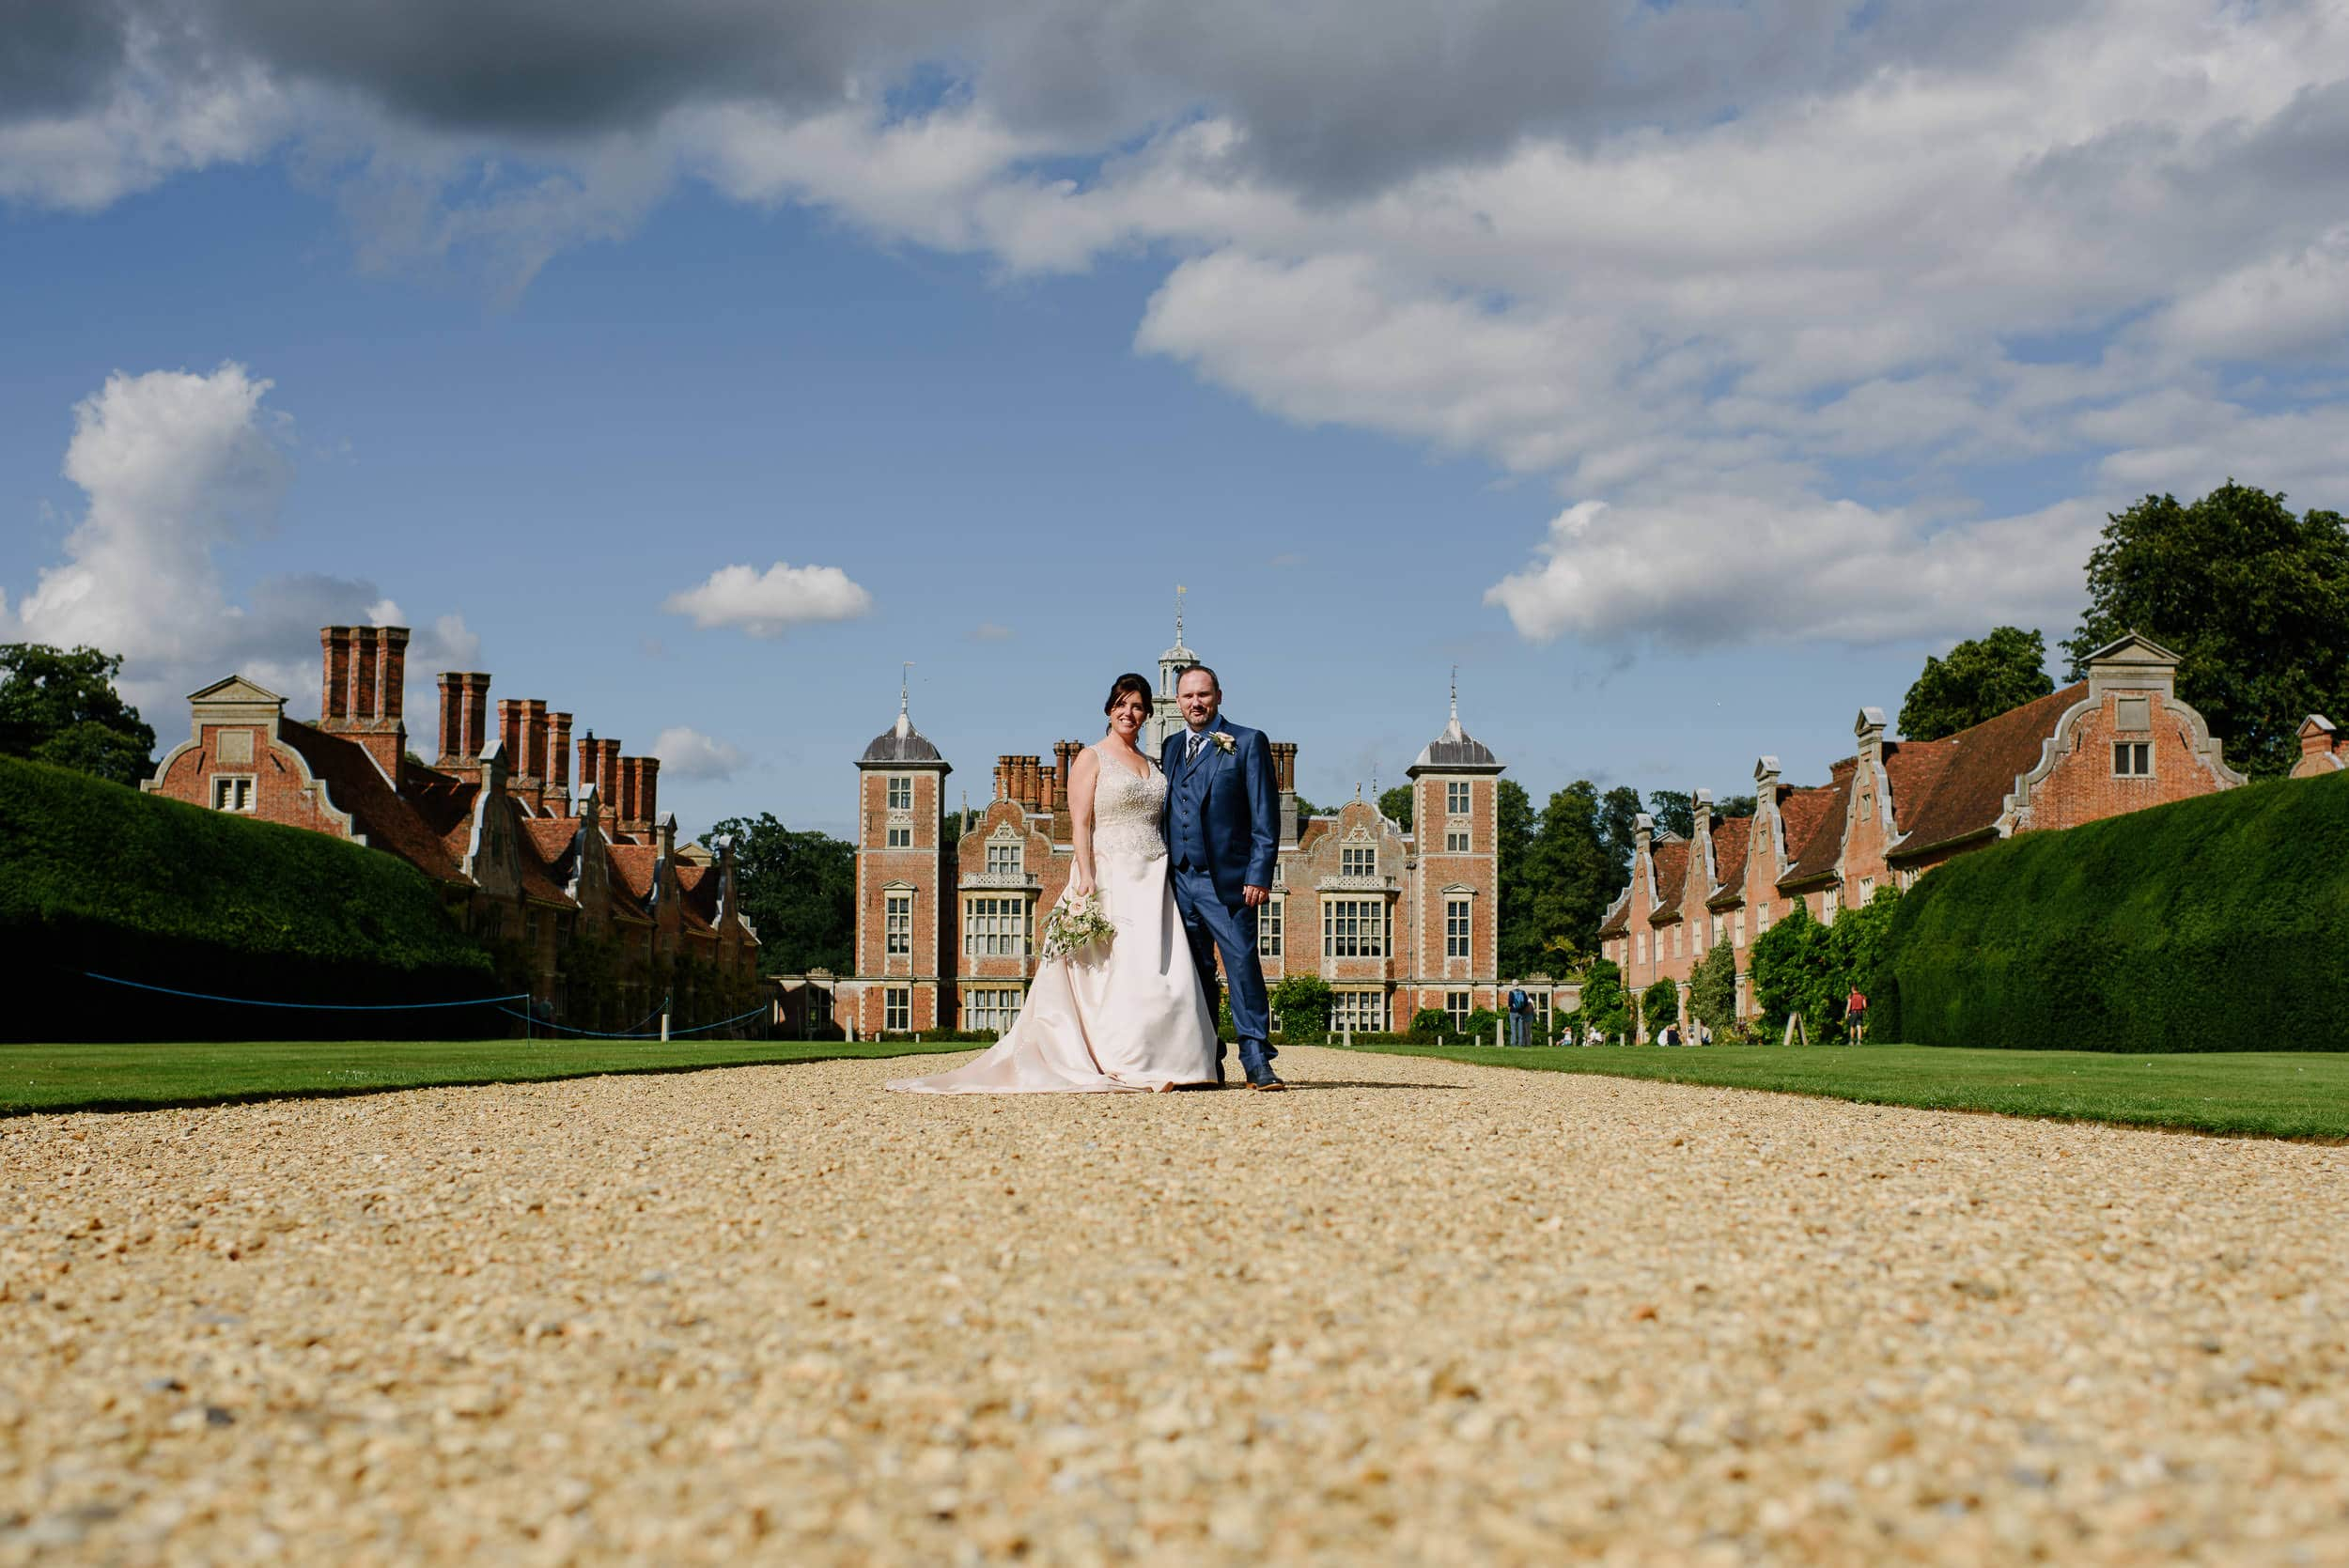 Suzy & Mike - Blickling Hall Wedding 44